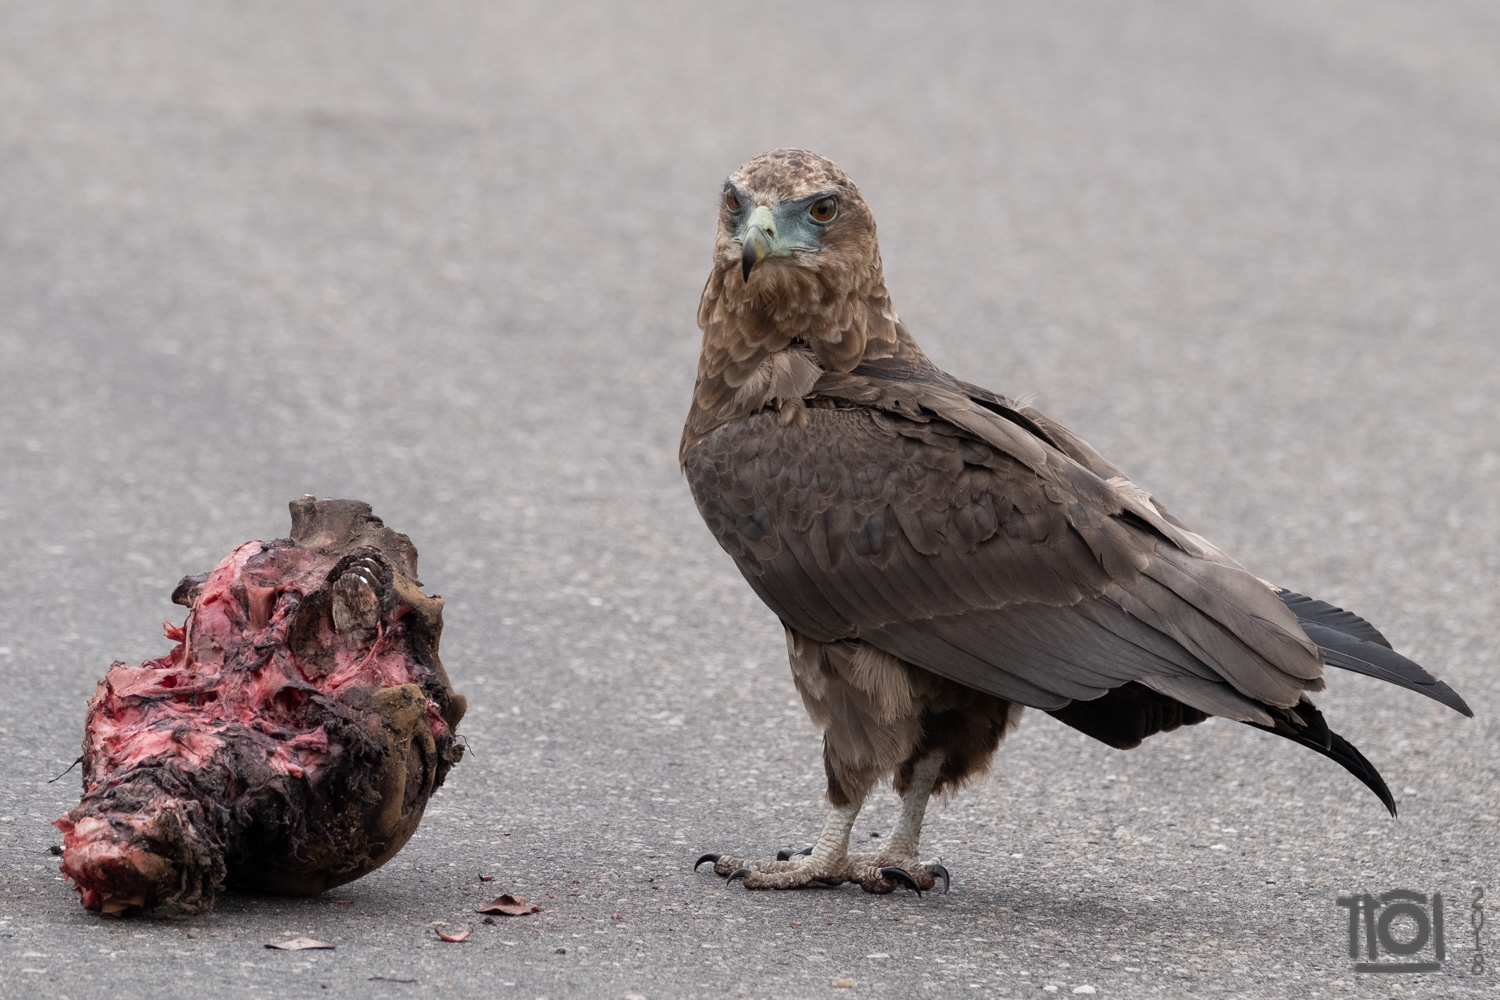 The jury is out - no agreement whether this is a juvenile Bateleur, or a Tawny Eagle